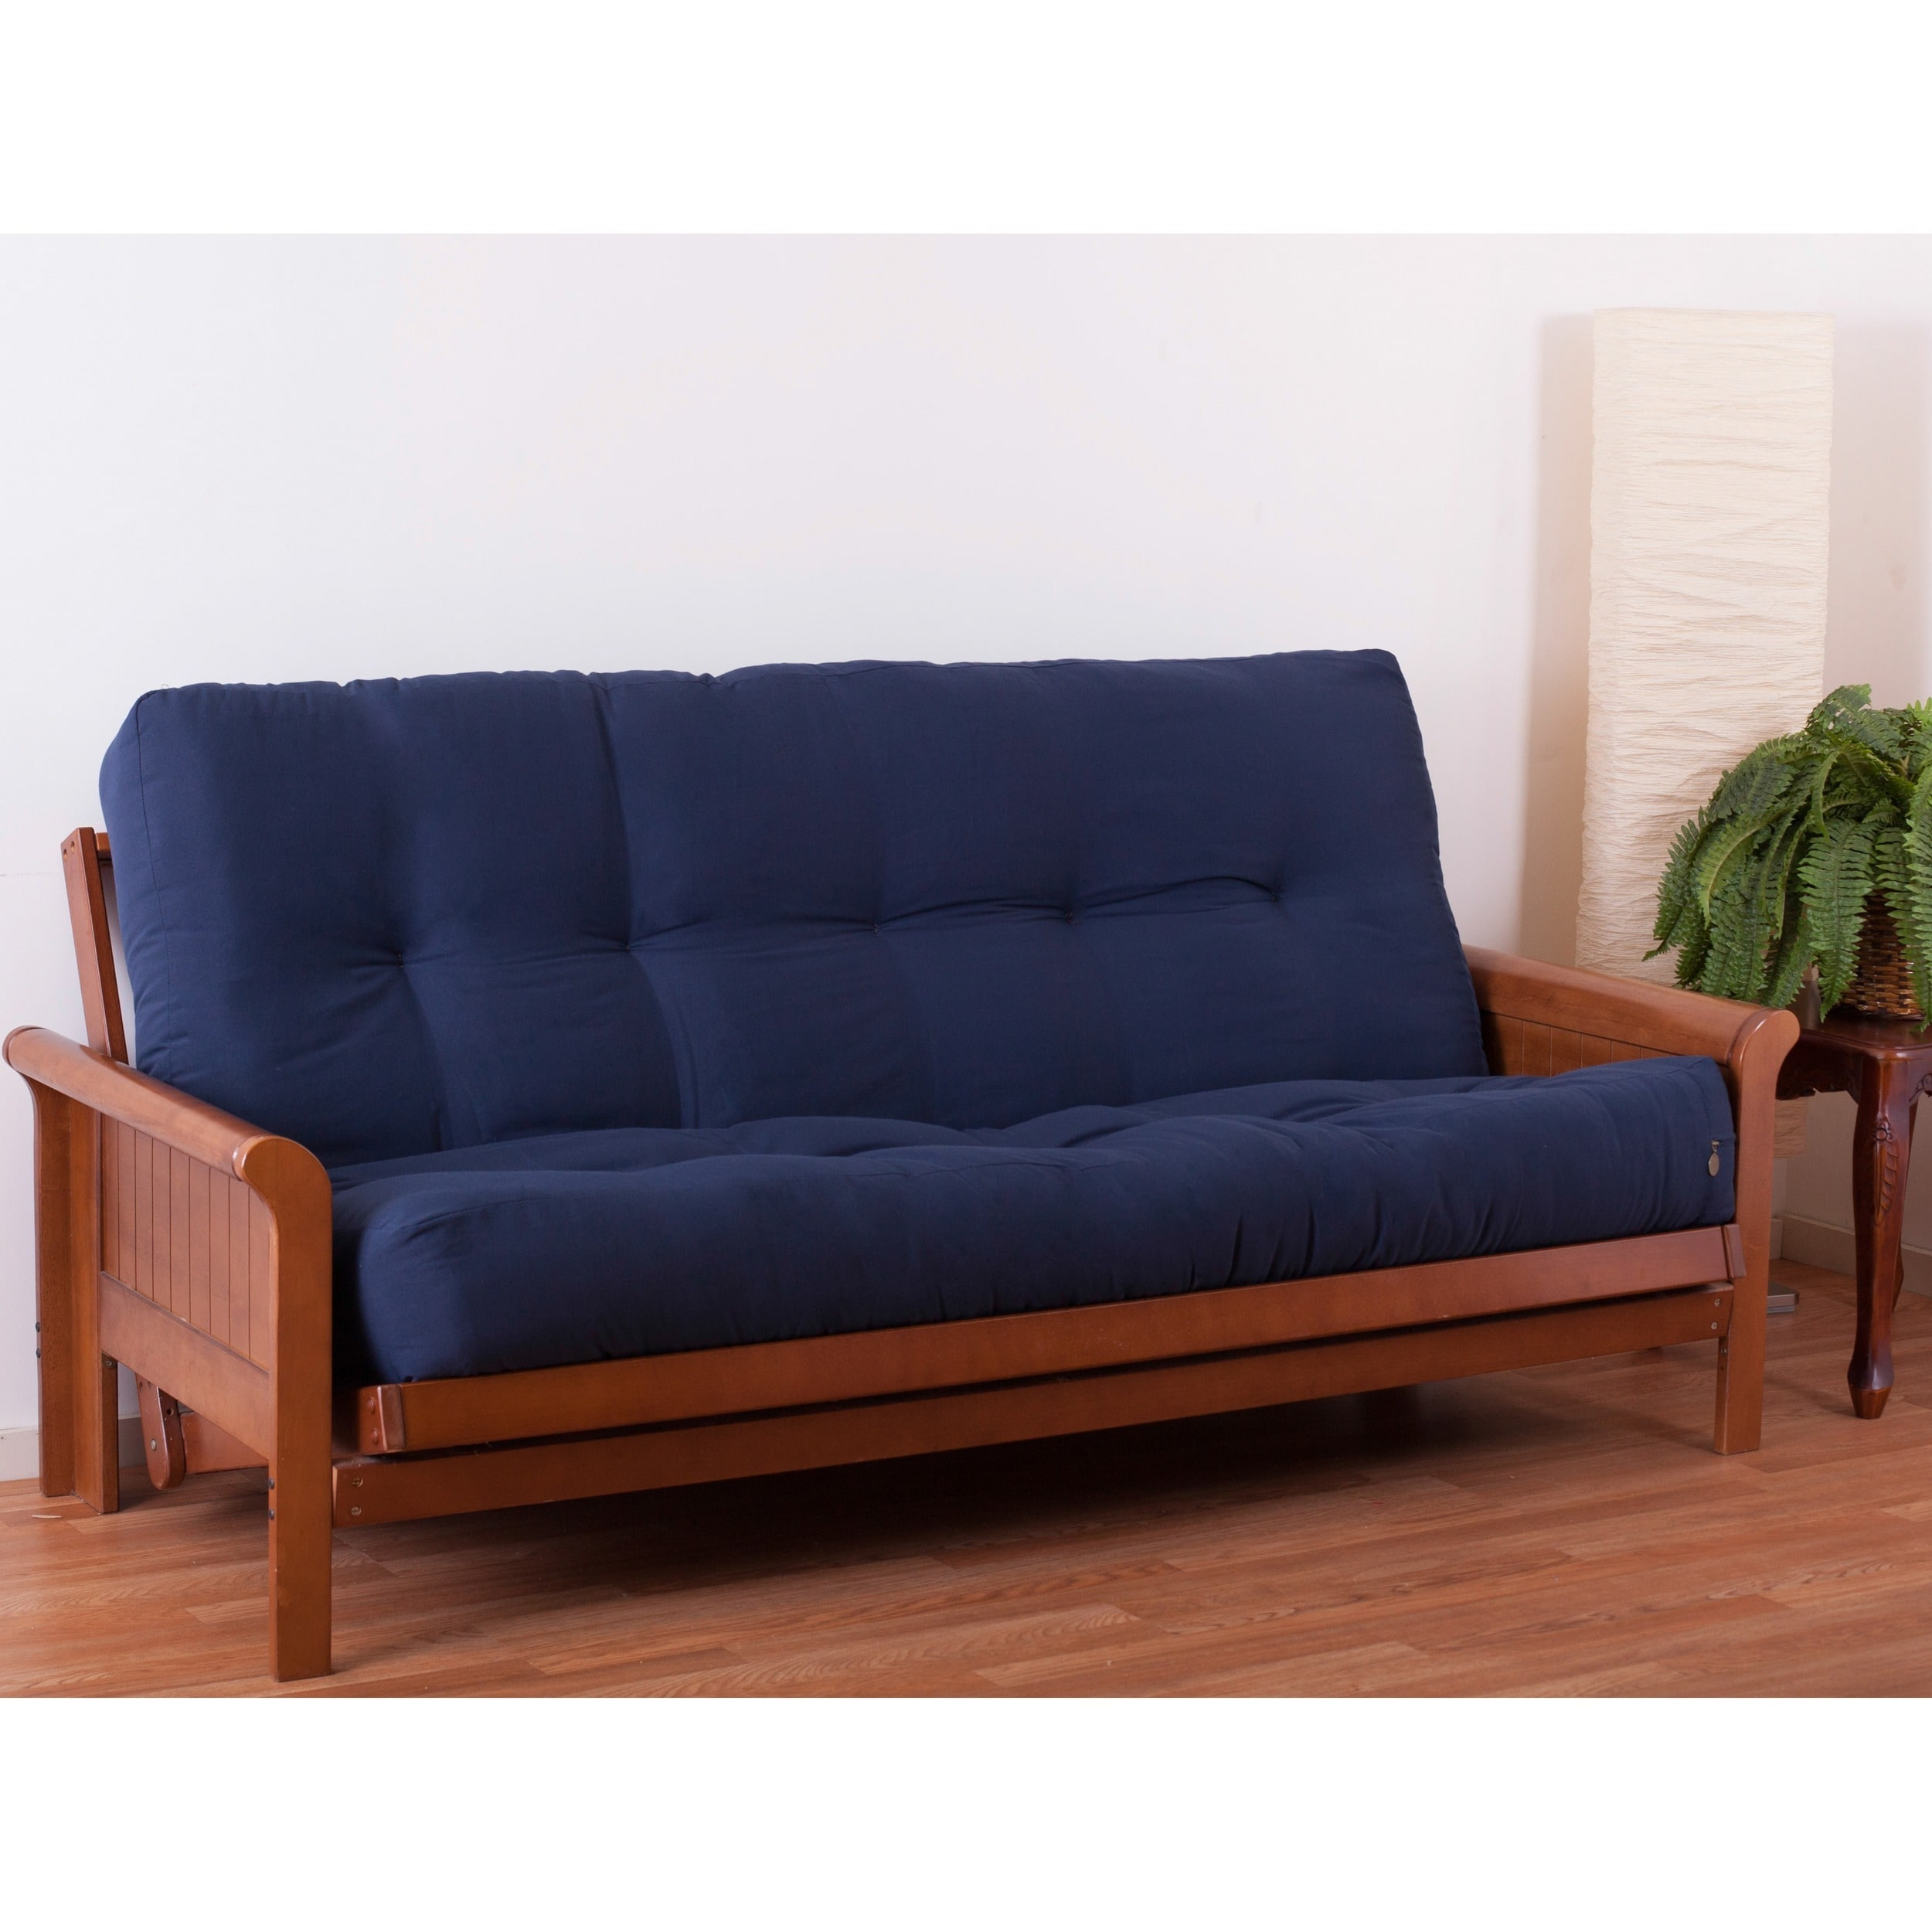 free futon newport shipping leather product home sofa today garden and sleeper abbyson faux overstock futons more